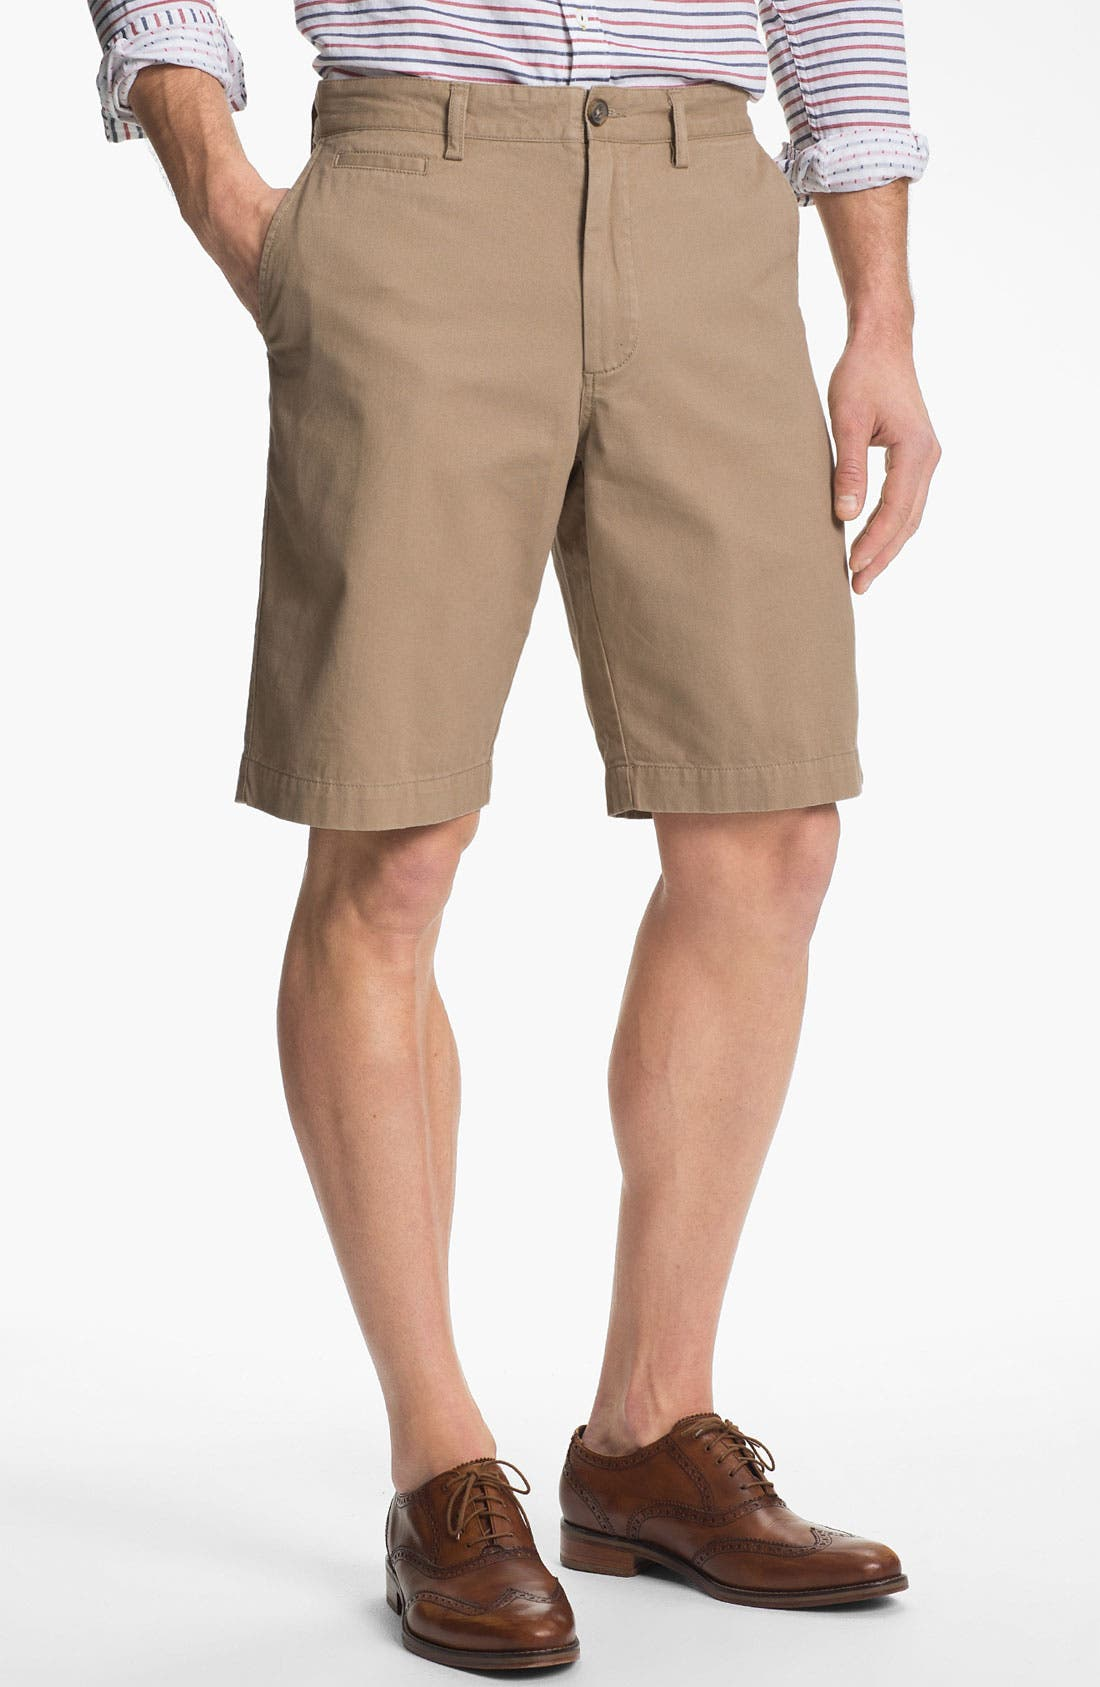 Main Image - Wallin & Bros. Flat Front Shorts